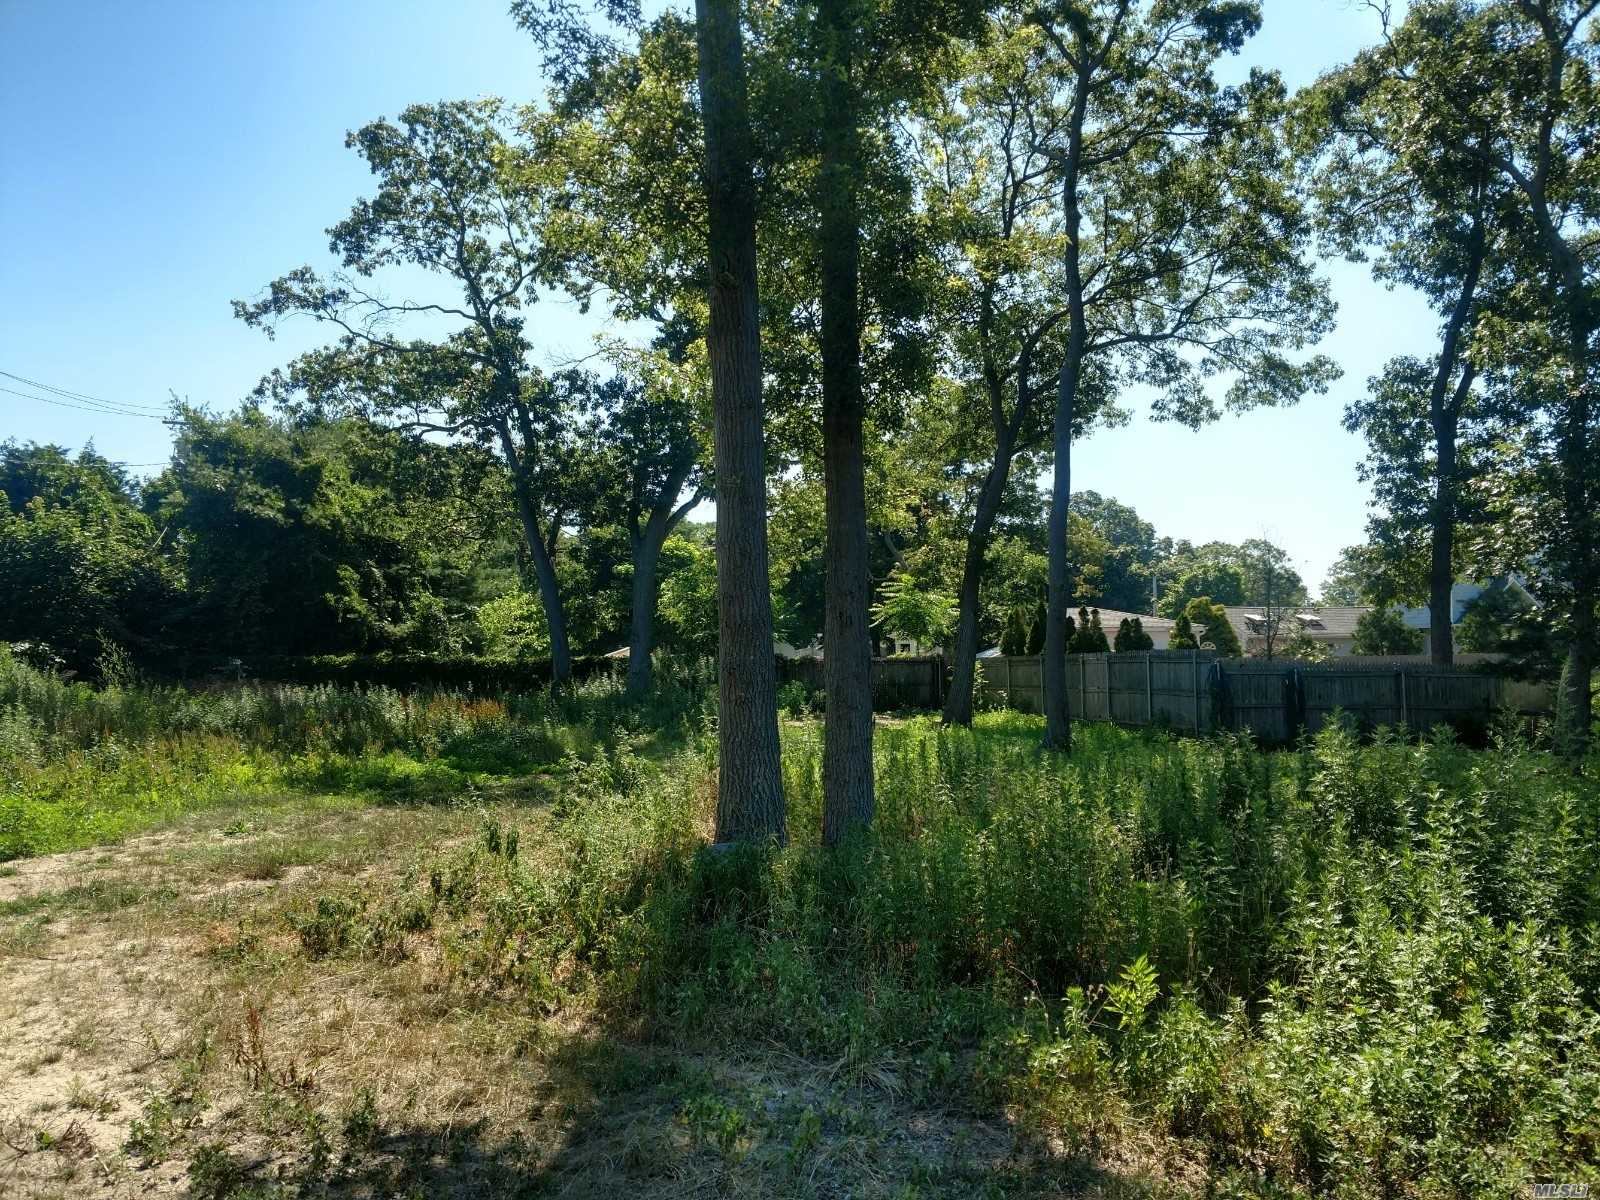 Vacant Building Lot In Scorching Hot Patchogue Village With Approvals Already In Place! Seller Has Village Planning Board Approval And Suffolk County Department Of Health Approval. All Utilities Are Already In, Including Water Main, Electric, And Even Sanitation System Is Installed Already. Plans Available Too. Start Digging Now!